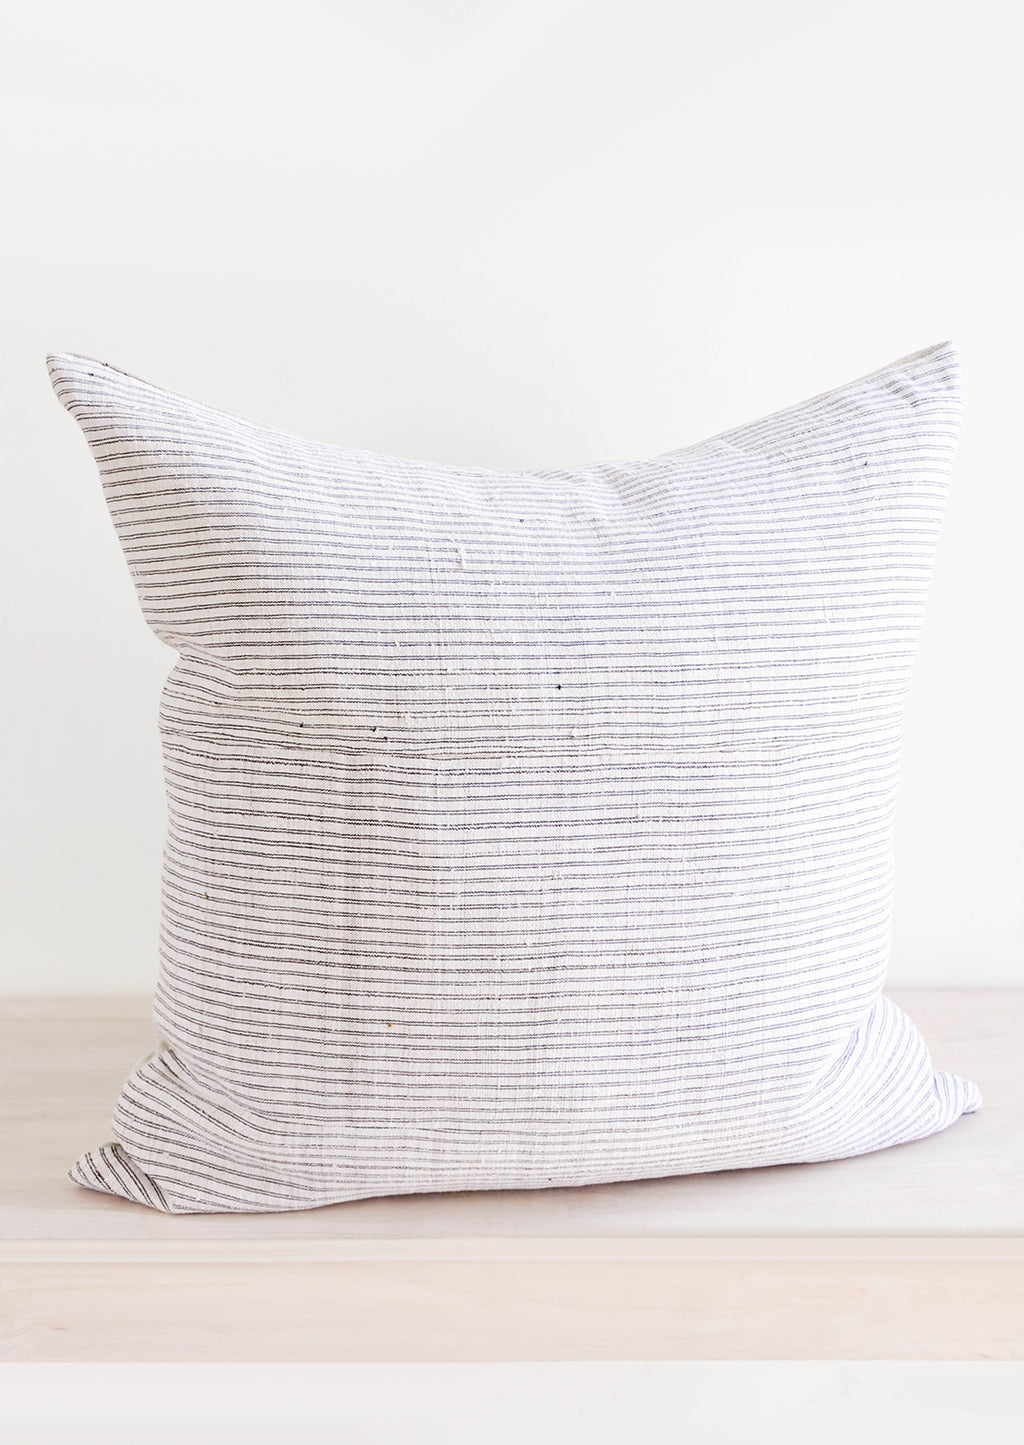 3: Square throw pillow in white hemp fabric with allover thin black stripes